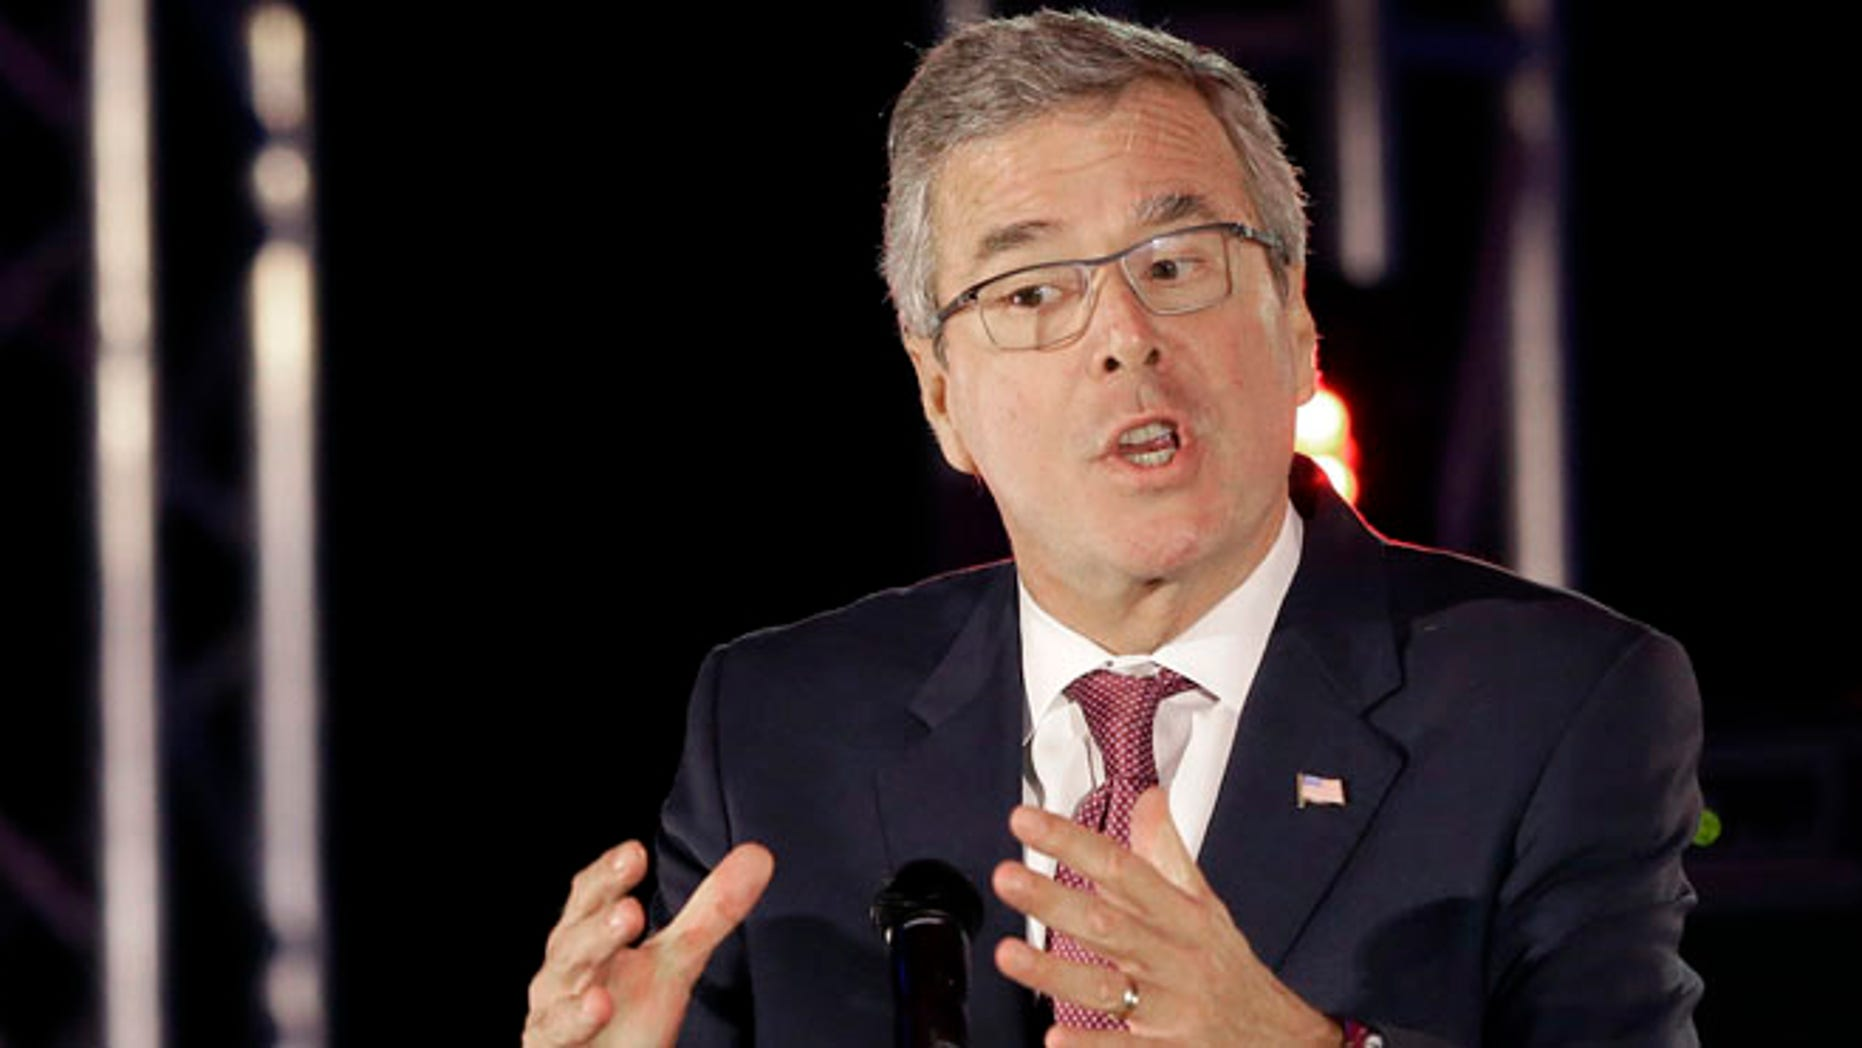 FILE - In this April 29,2015 file photo, former Florida Gov. Jeb Bush speaks in Houston. He spoke in a language most Republican presidential primary voters do not understand. âYou are part of the new wave of hope for this country,â Jeb Bush said in fluent Spanish to the National Hispanic Christian Leadership Conference this week. Switching to English, he said the U.S. needs immigrants for the country âto become young and dynamic again.â  (AP Photo/Pat Sullivan, File)